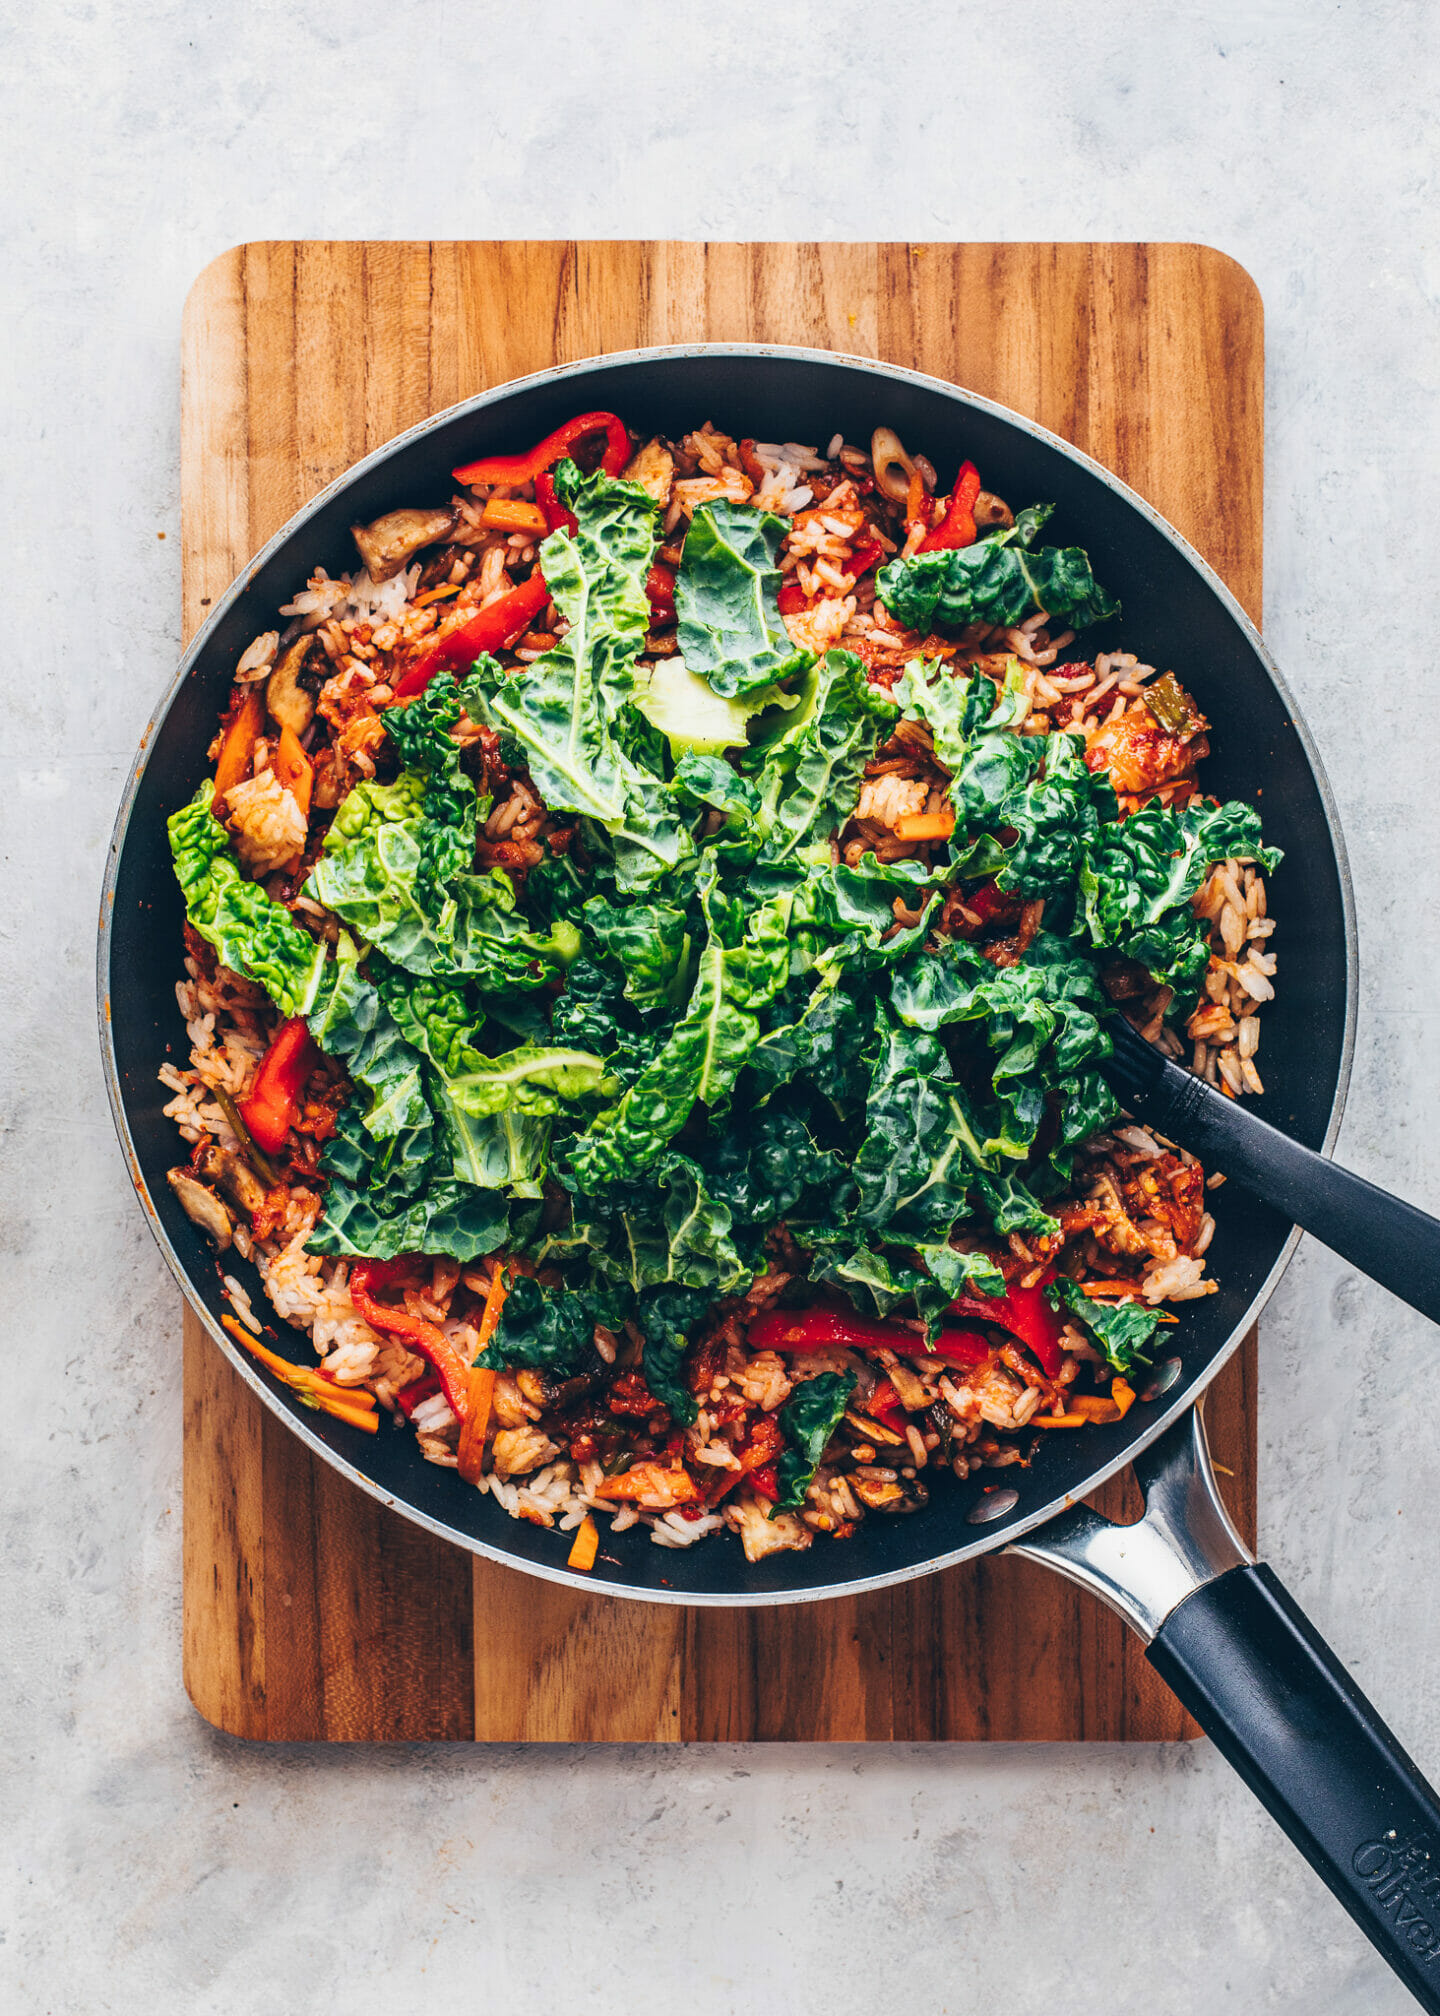 Kimchi Fried Rice with Mushrooms and Kale